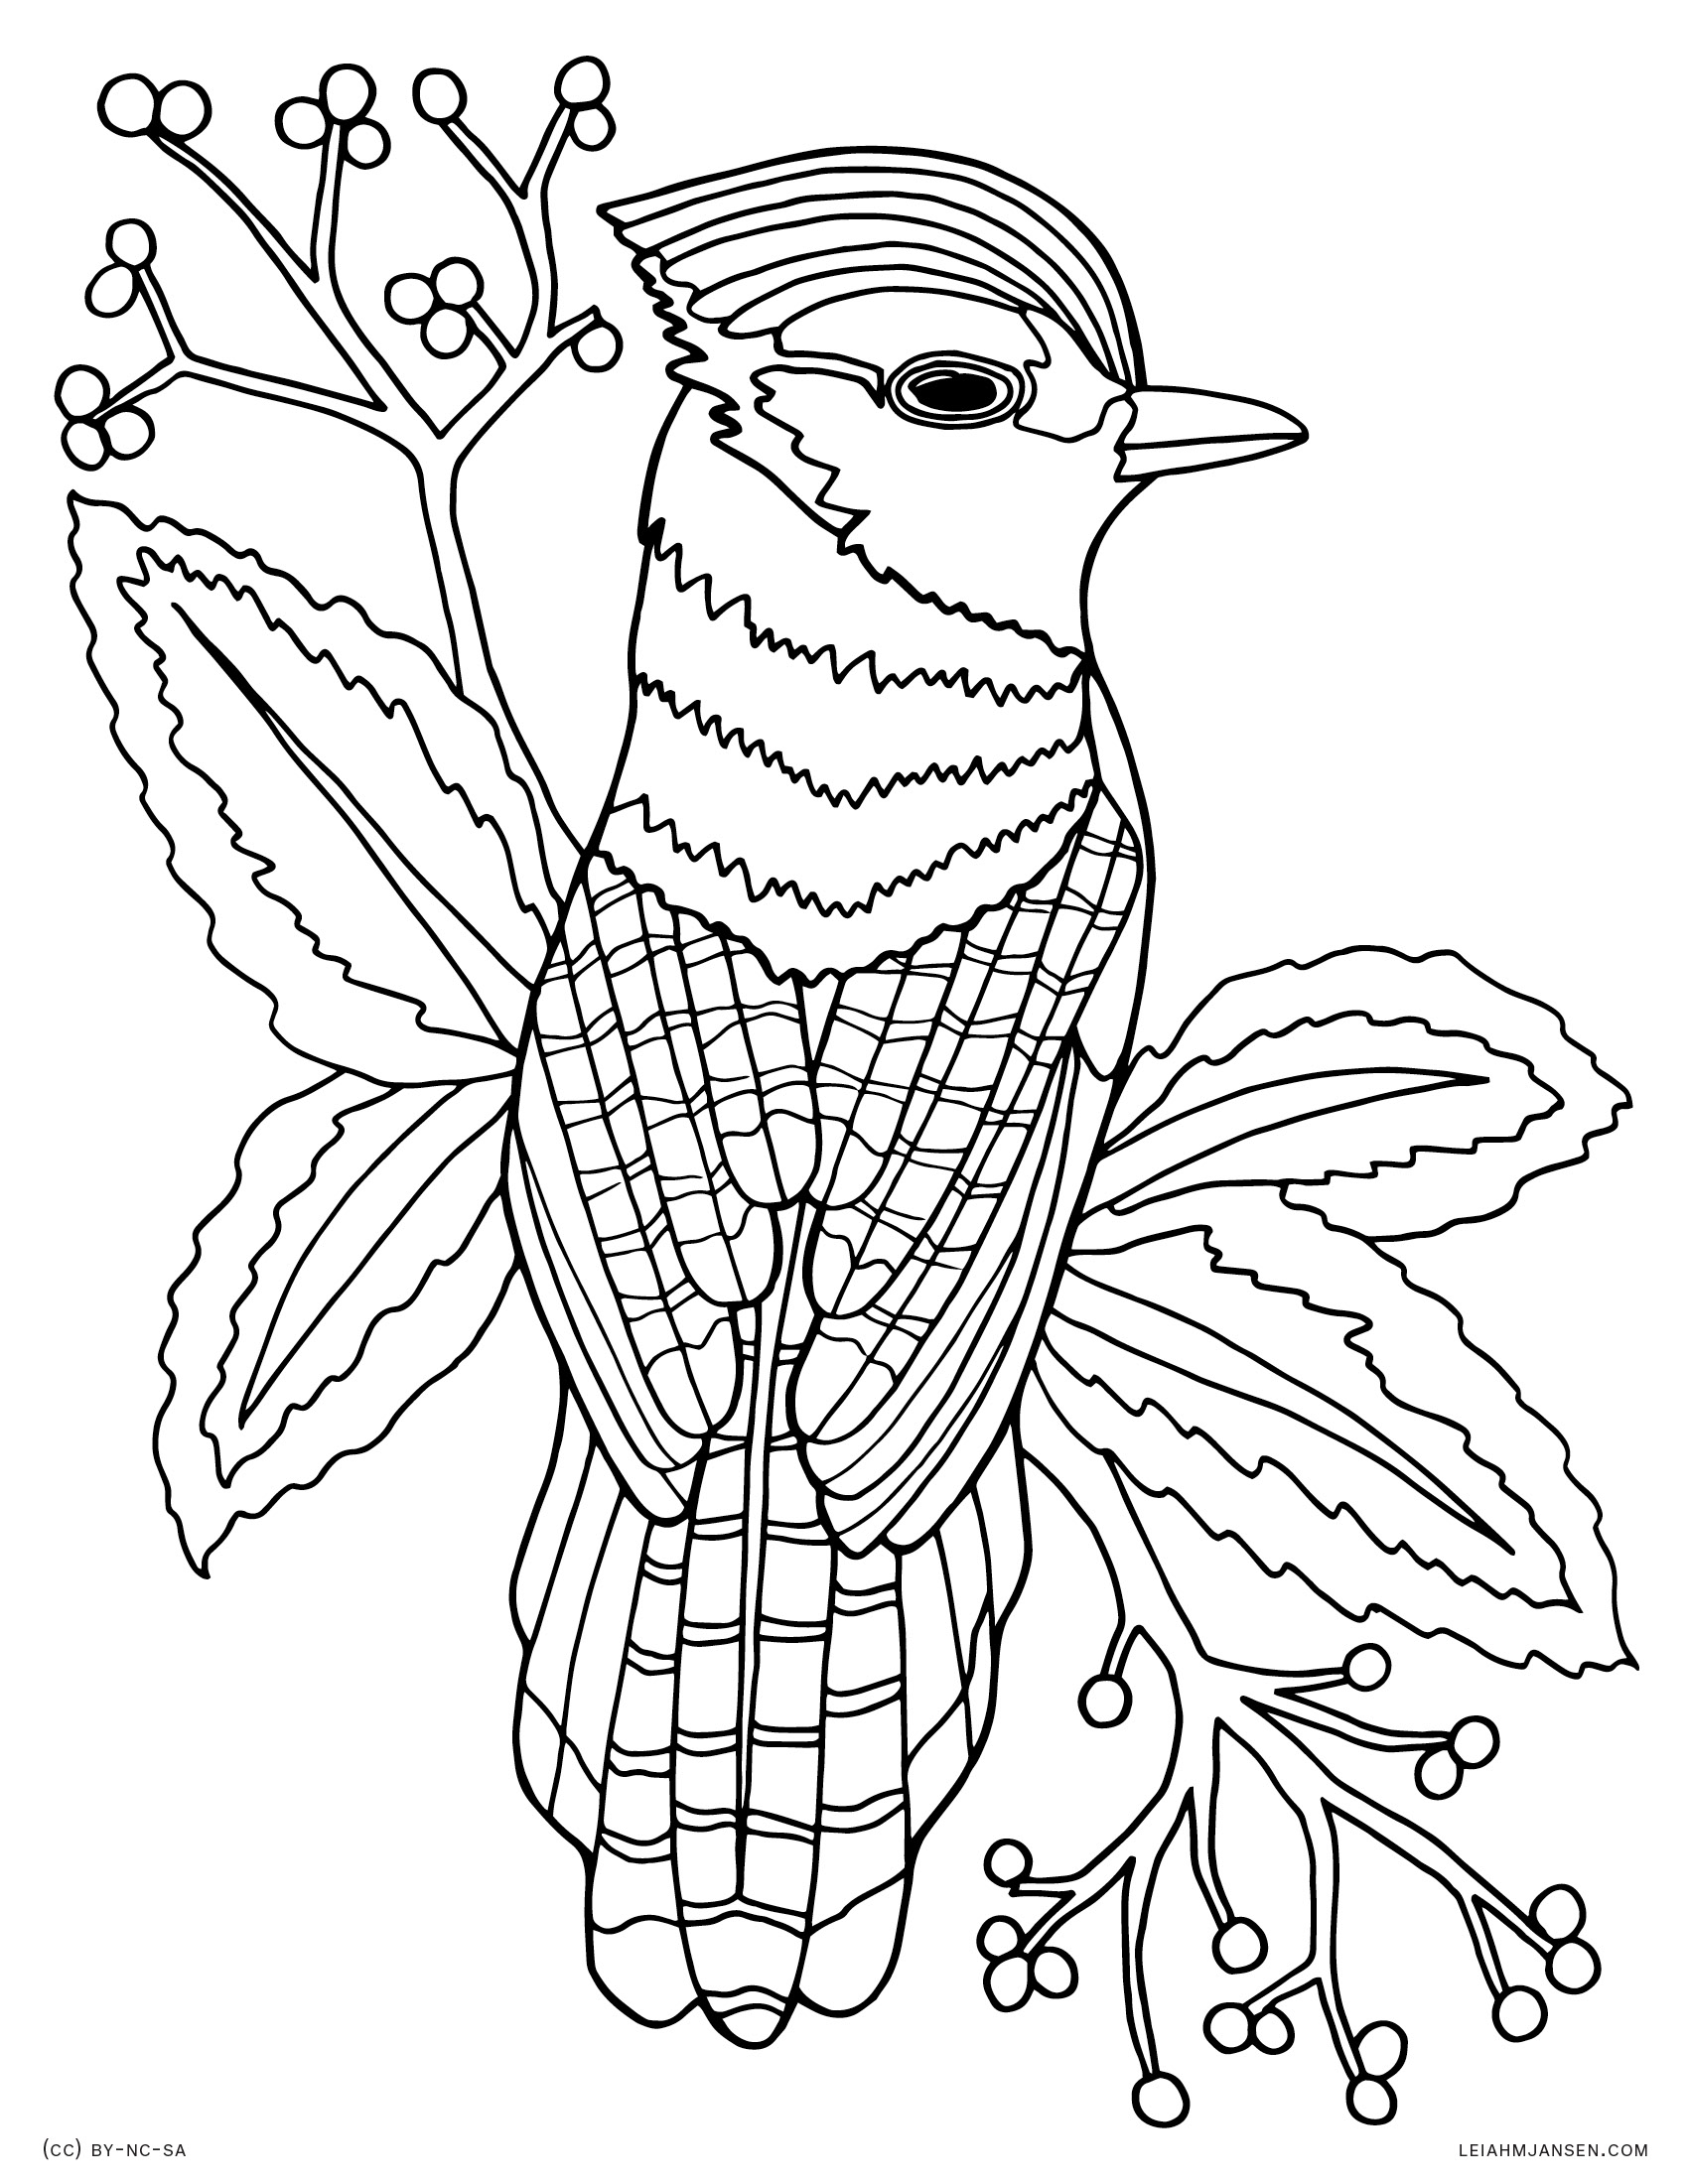 Detailed Animal Coloring Pages For Adults At Getcolorings